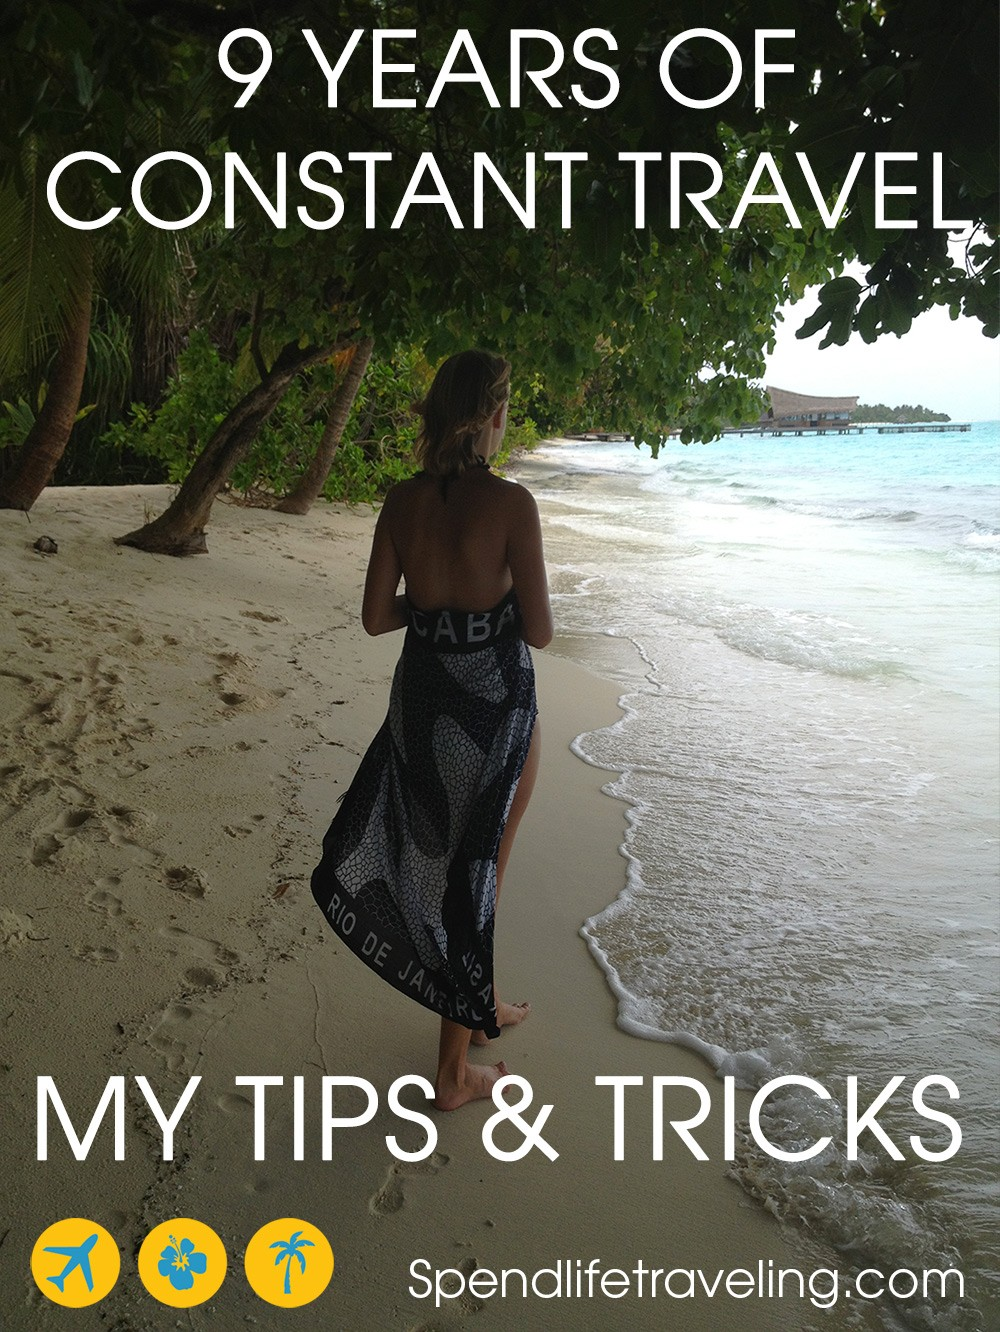 constant travel: tips & tricks